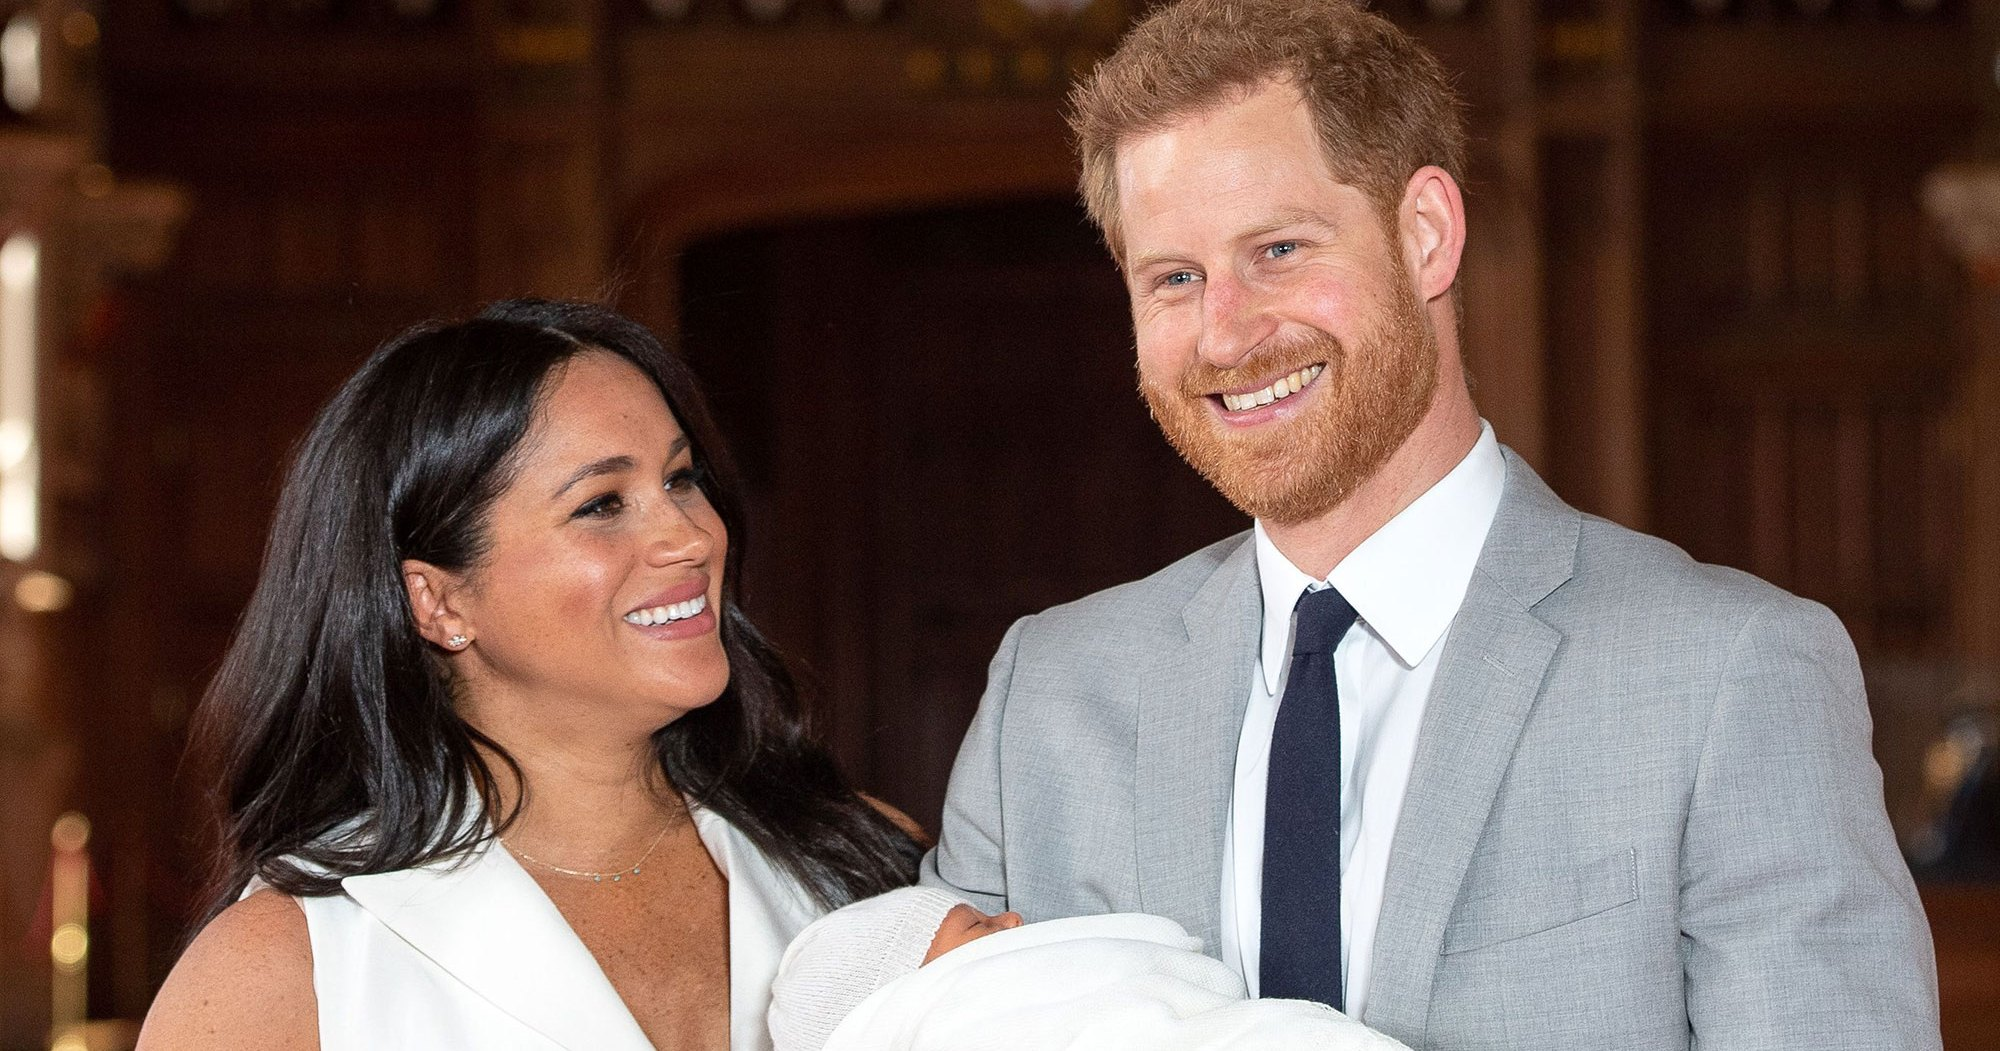 Prince Harry, Meghan Markle's Baby Archie's Royal Page Had a Typo